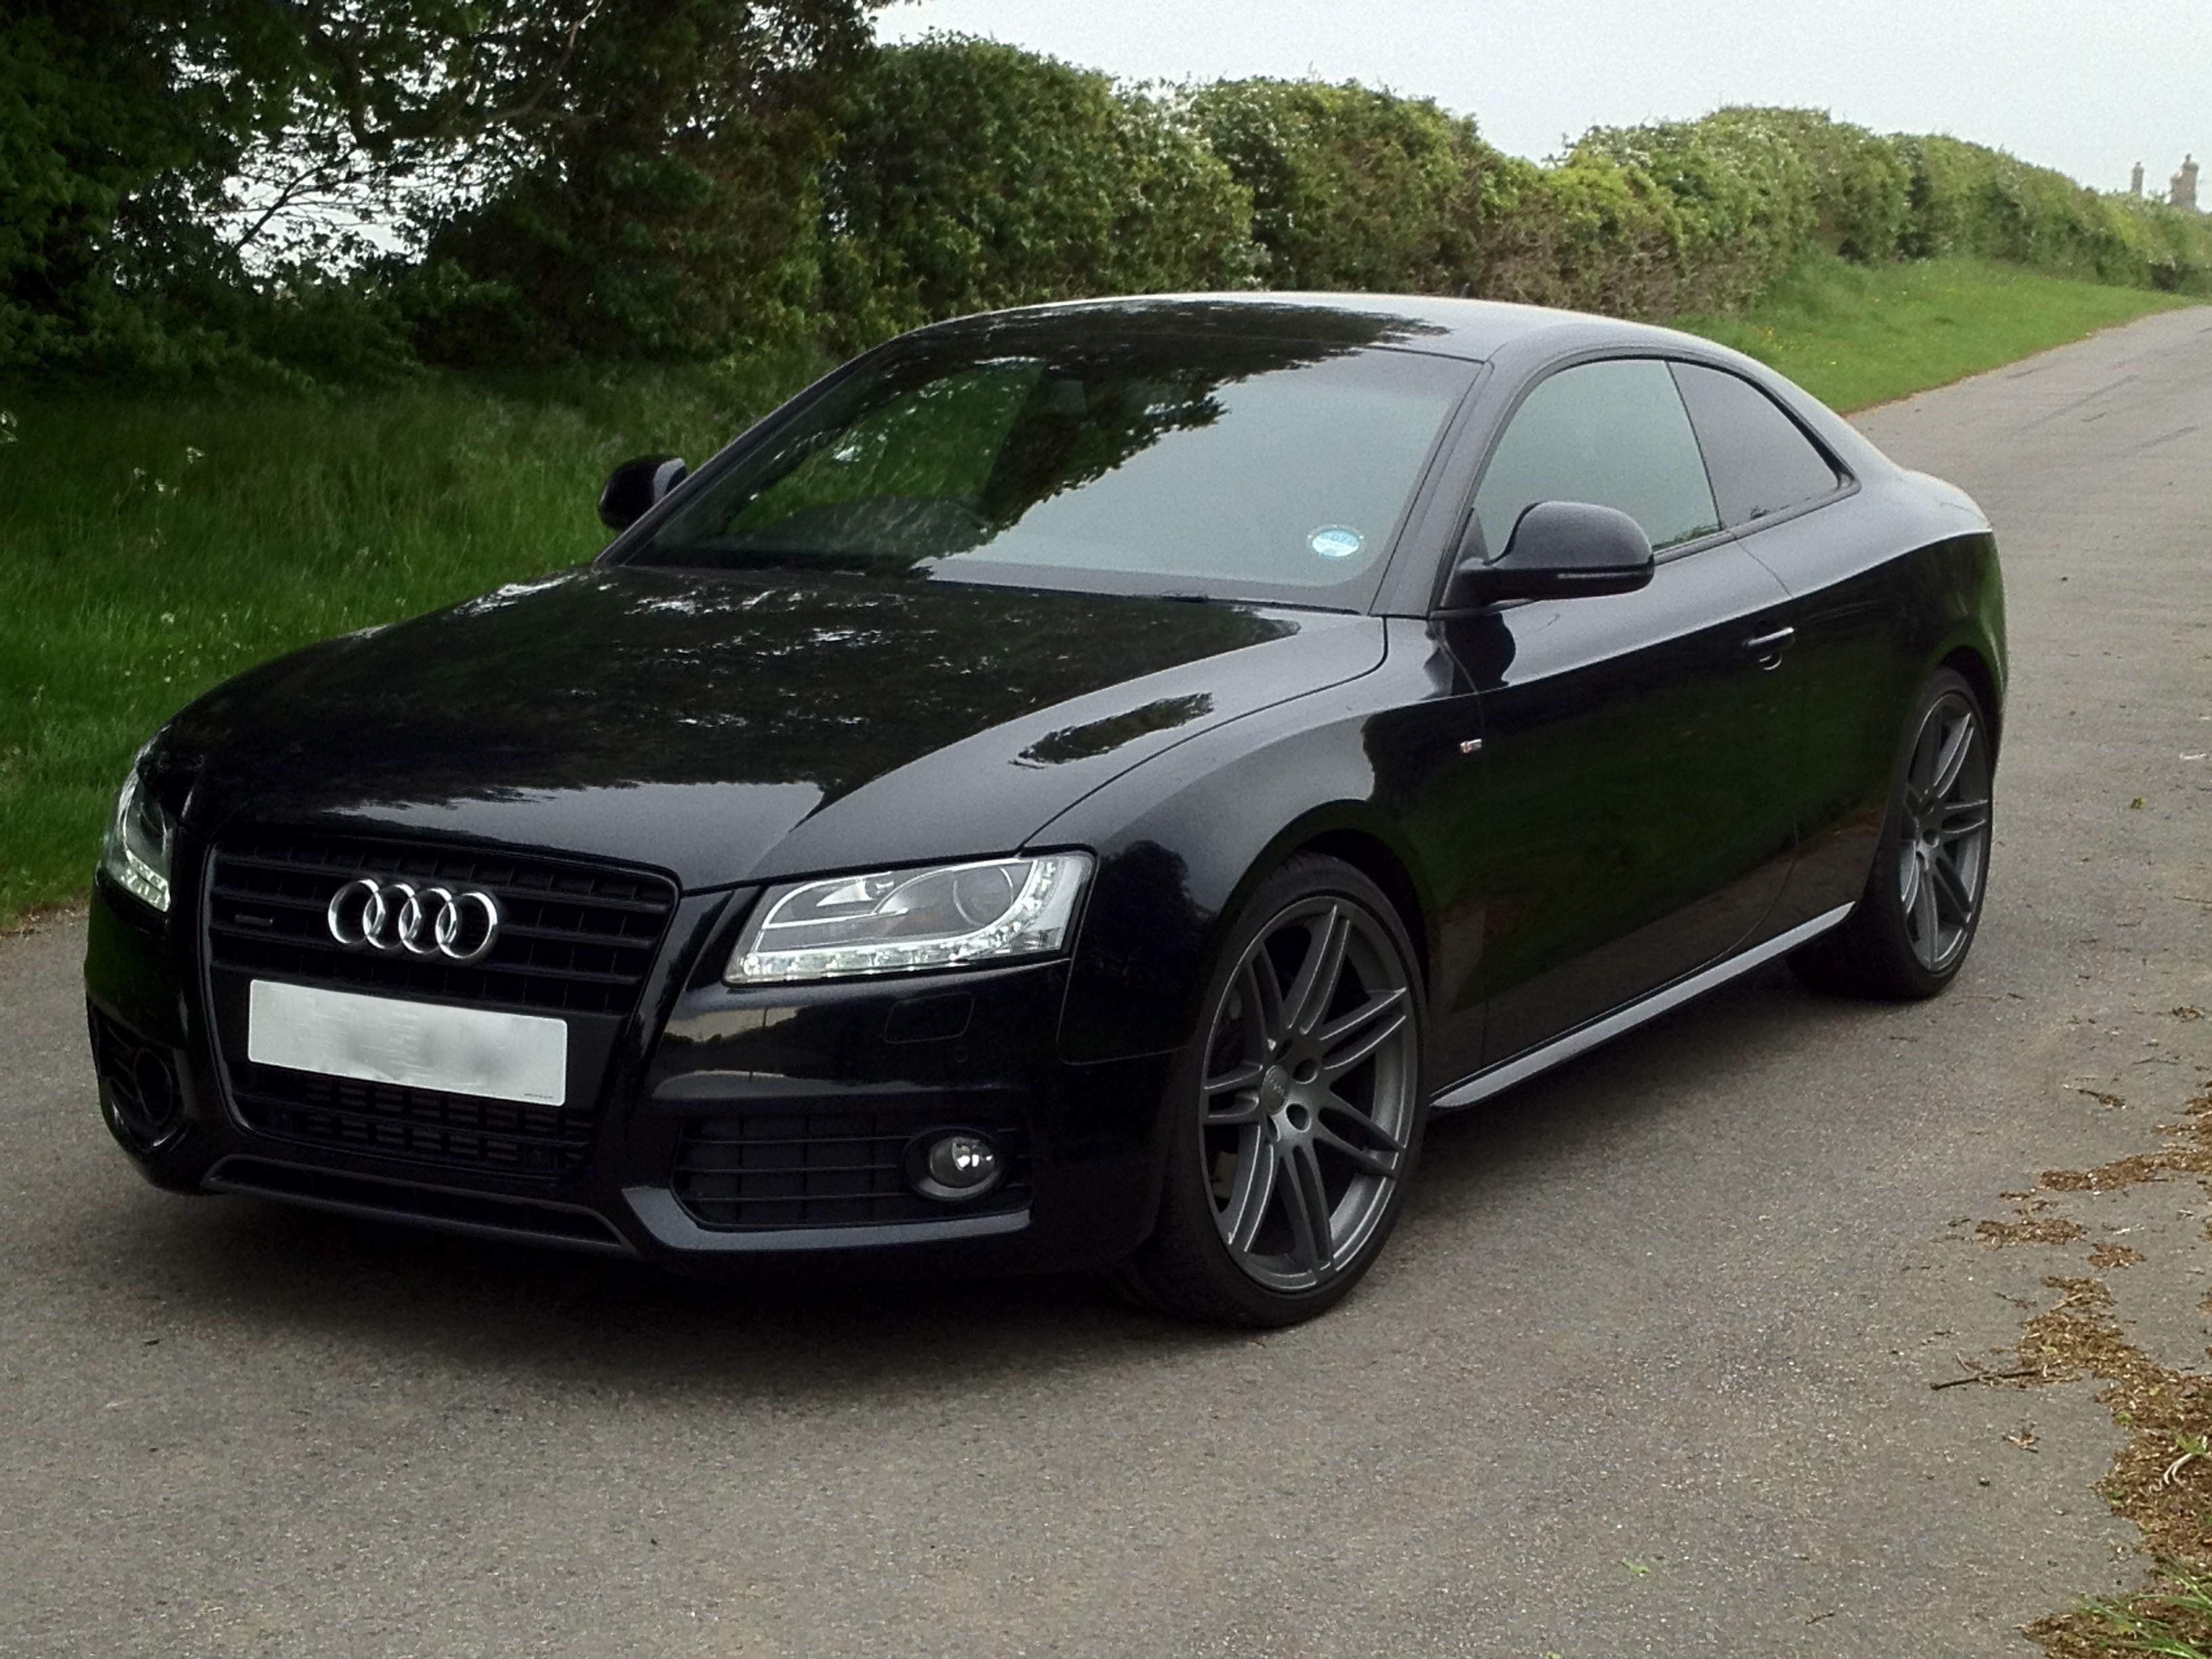 Audi a5 27 tdi 2009 review